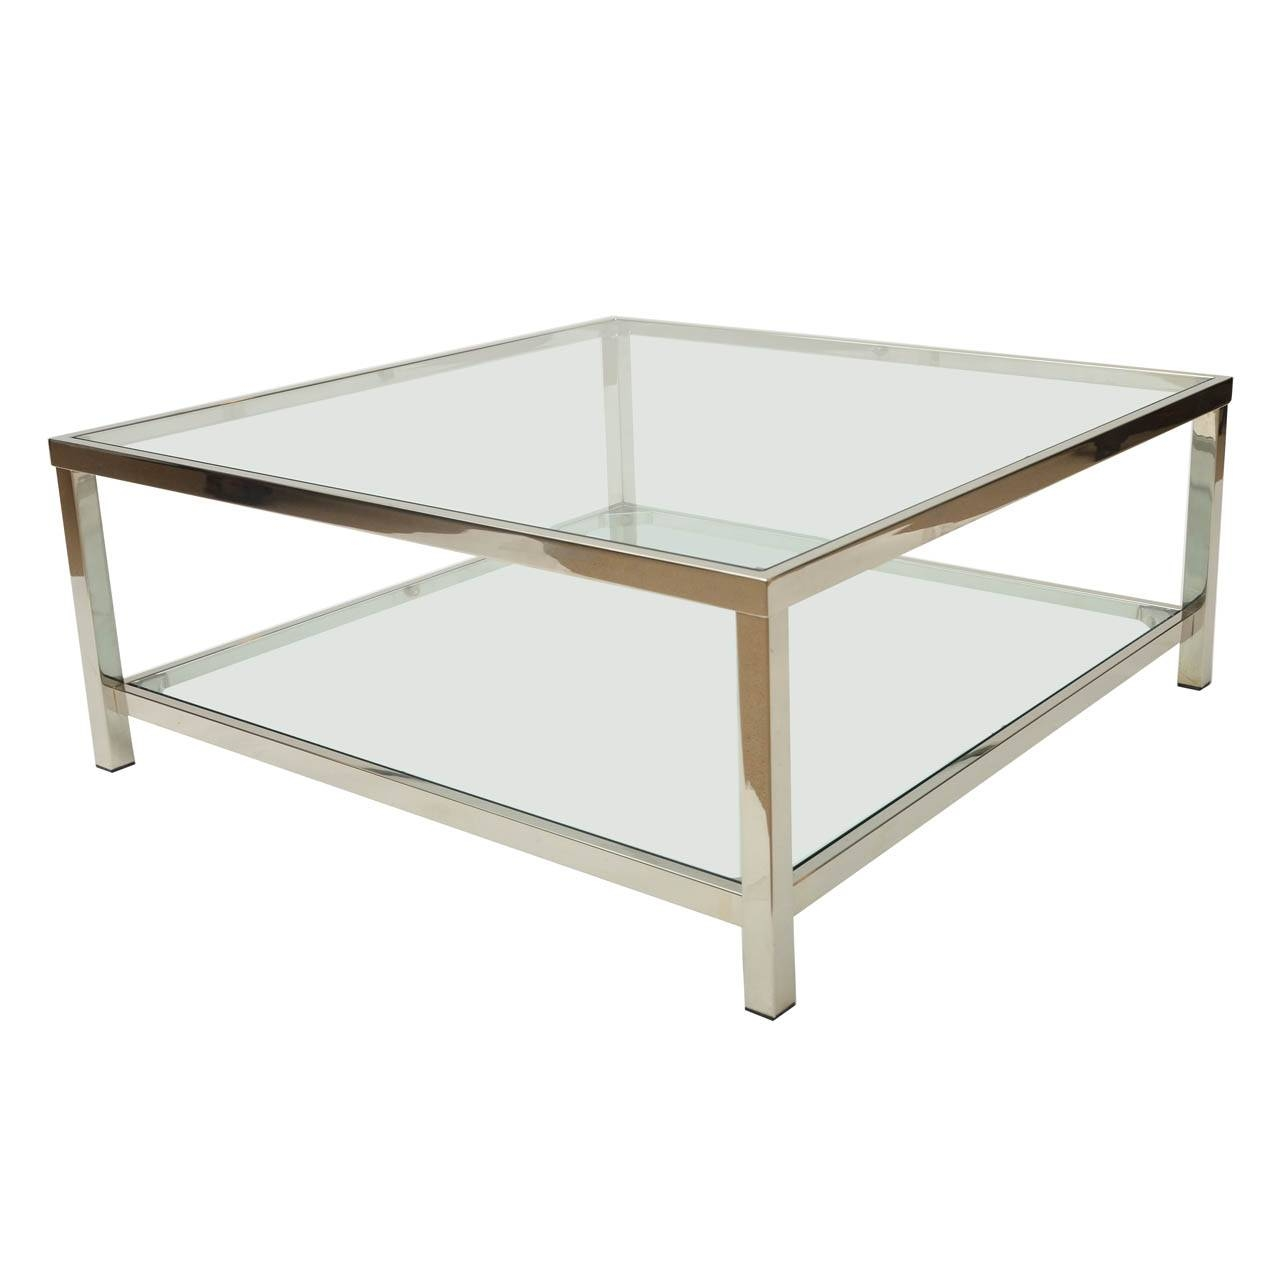 All You Need To Know About Glass And Chrome Coffee Tables Inside Chrome And Wood Coffee Tables (View 4 of 30)